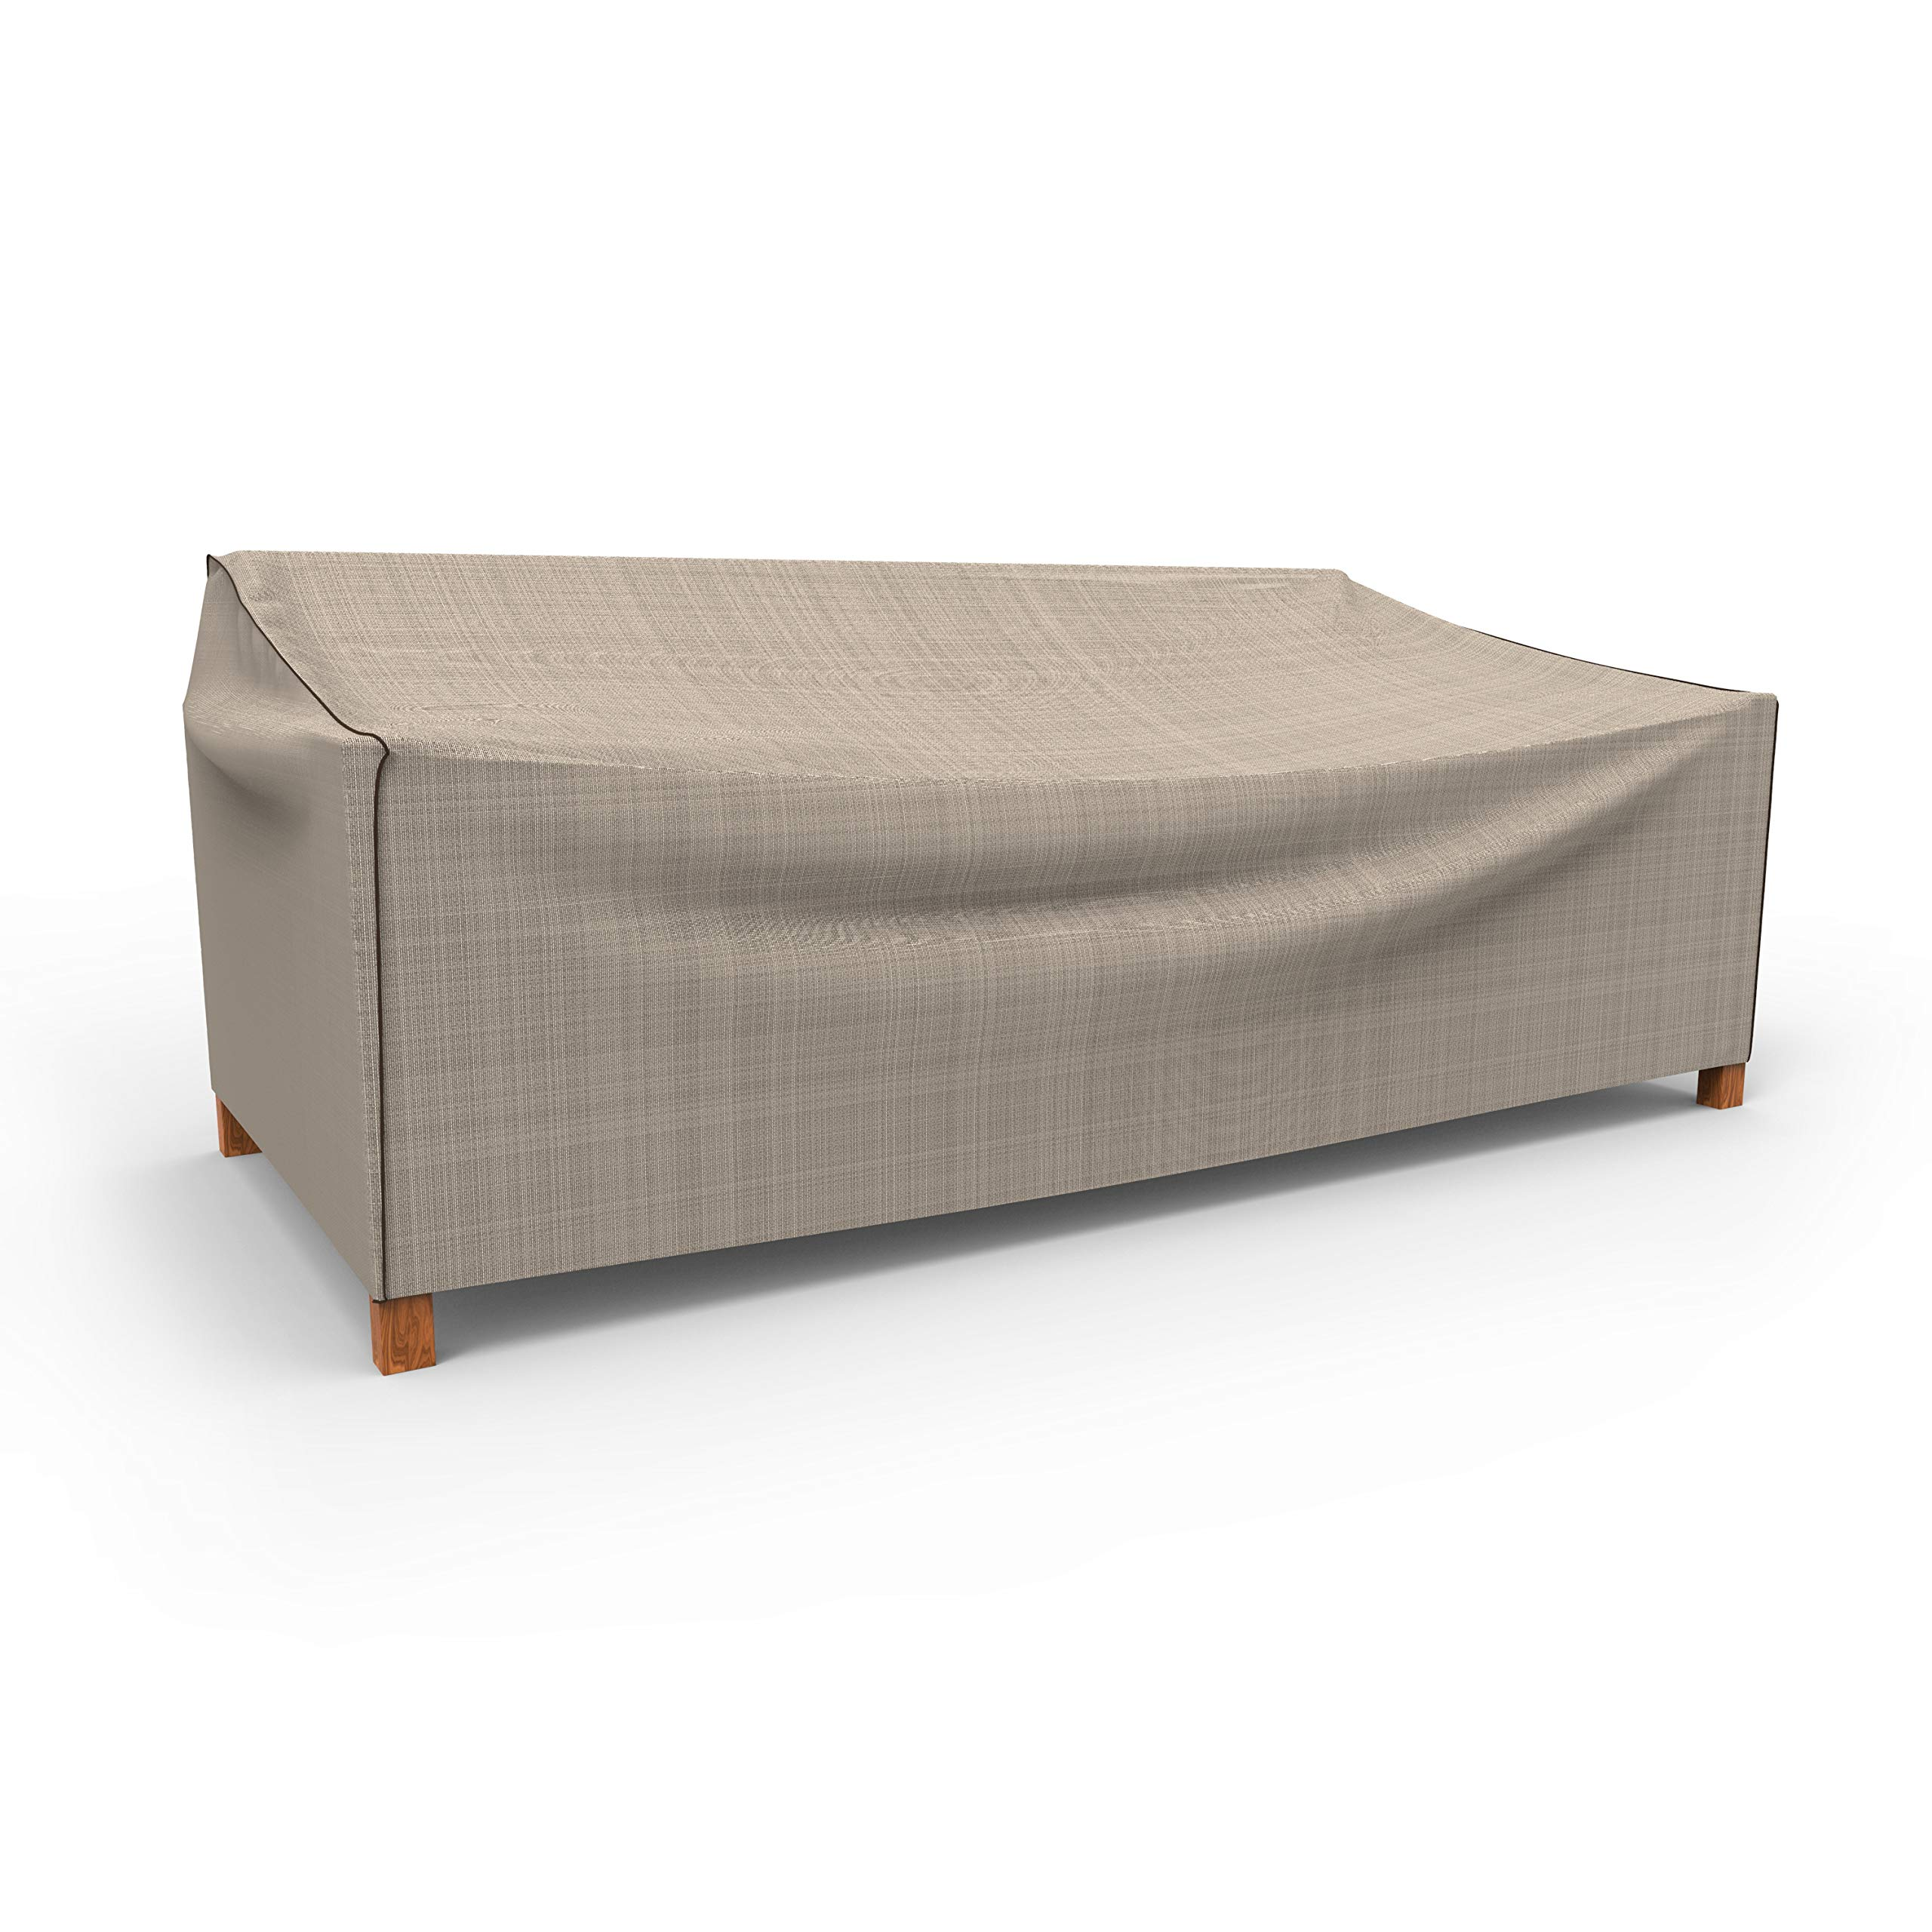 EmpirePatio Tan Tweed Outdoor Patio Sofa Cover, Large by EmpireCovers